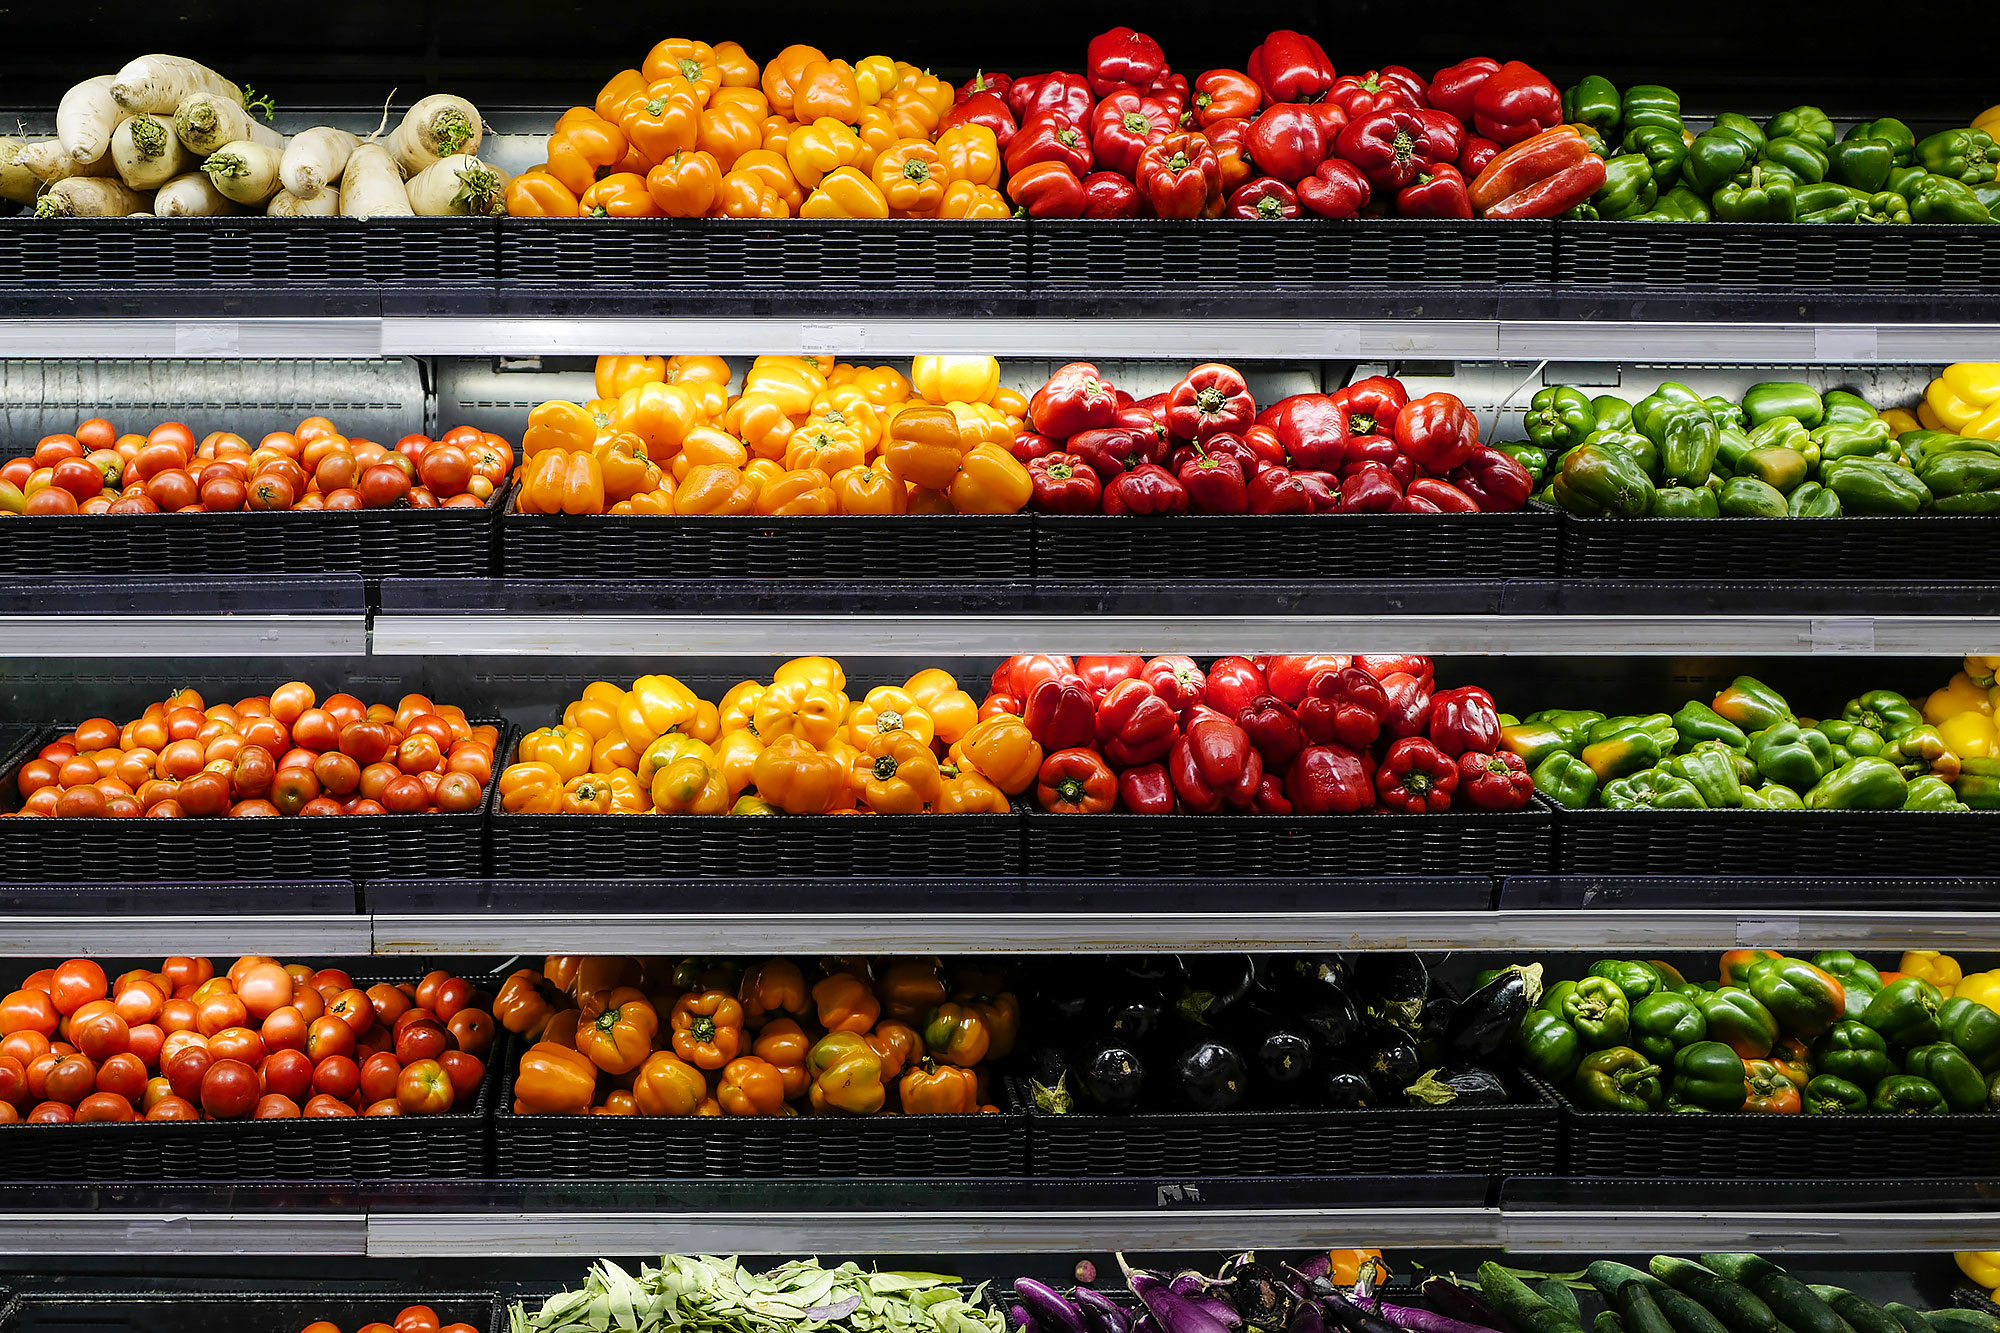 Organic produce on grocery store shelves